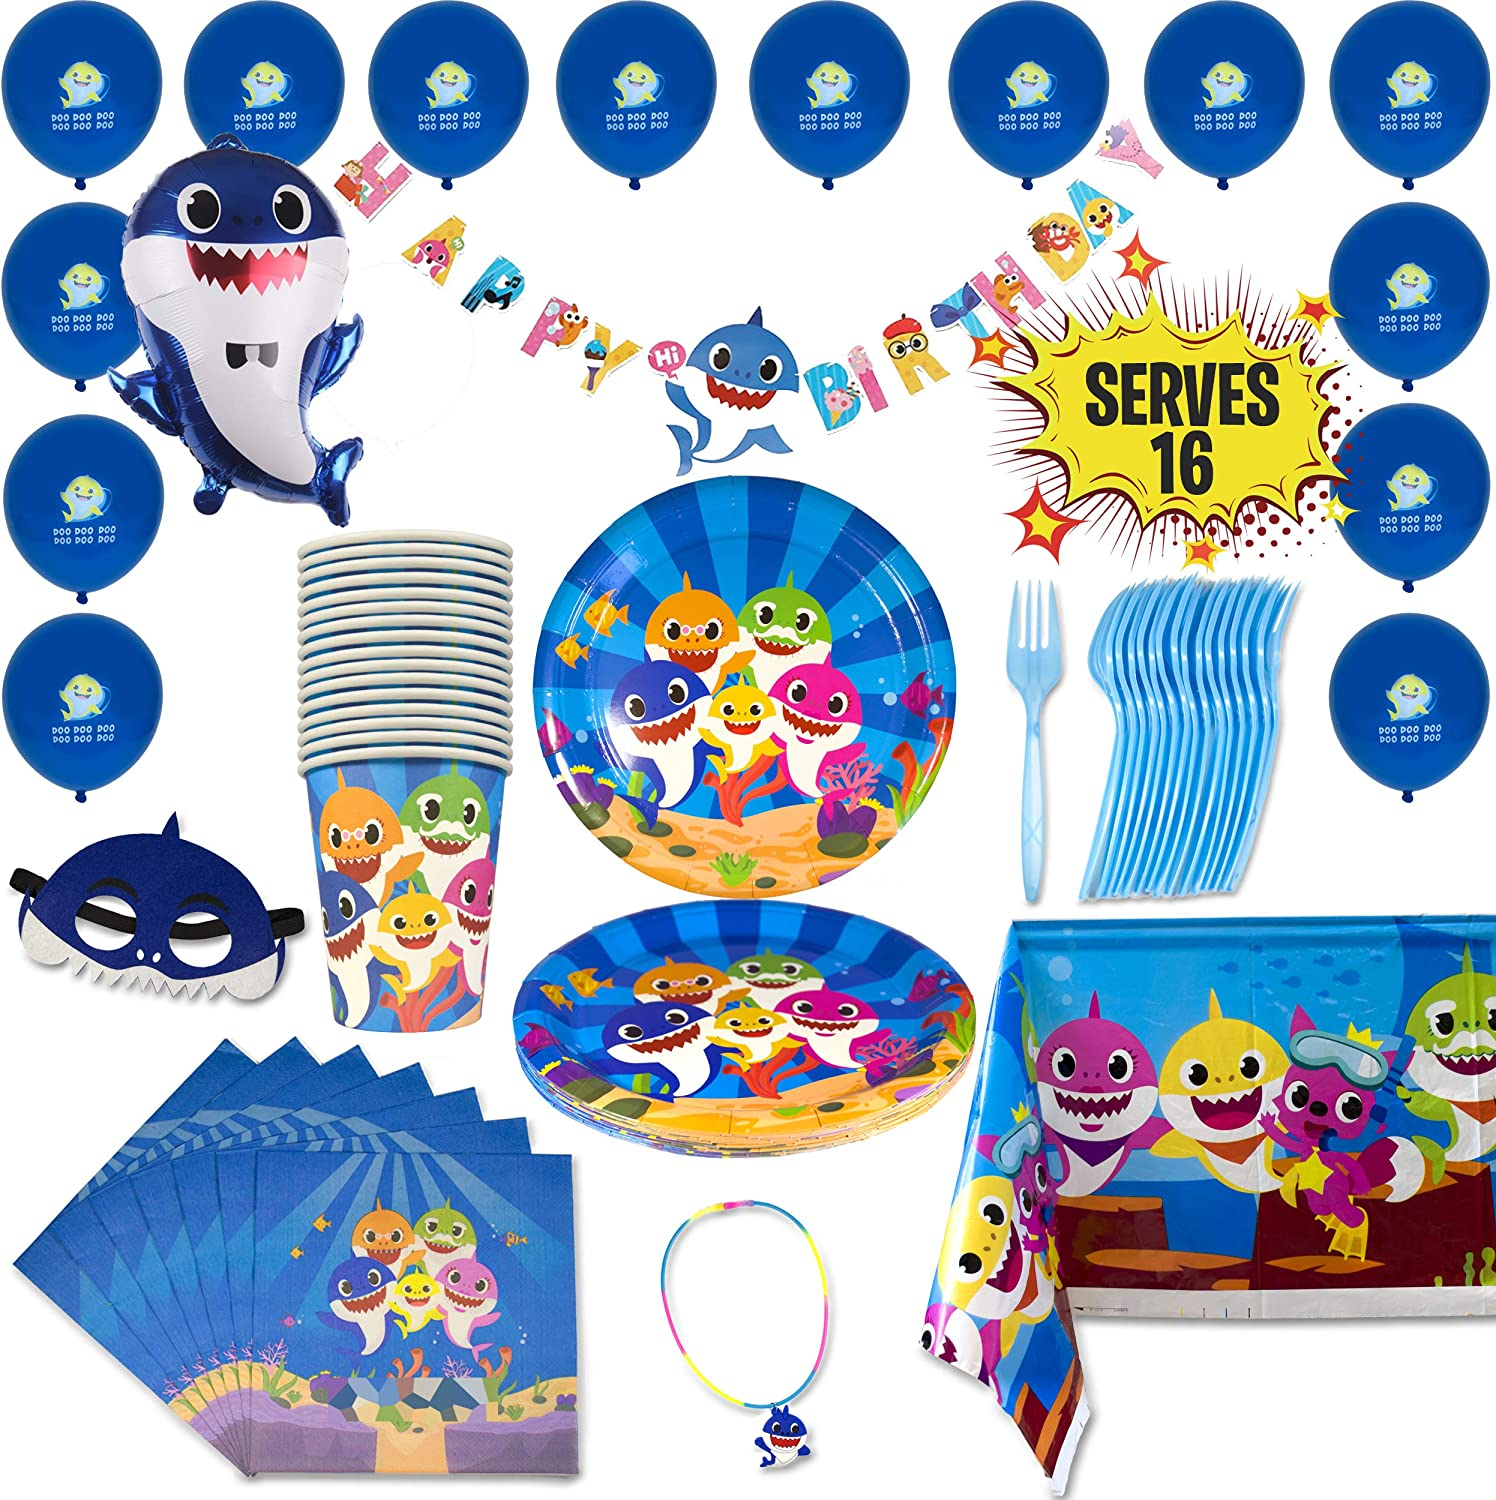 Innohero Shark Party Supplies for Baby 79 Pieces 16 Guests Includes Happy Birthday Banner Balloons Plates Cups Napkins Forks Tablecloth Mask & Necklace